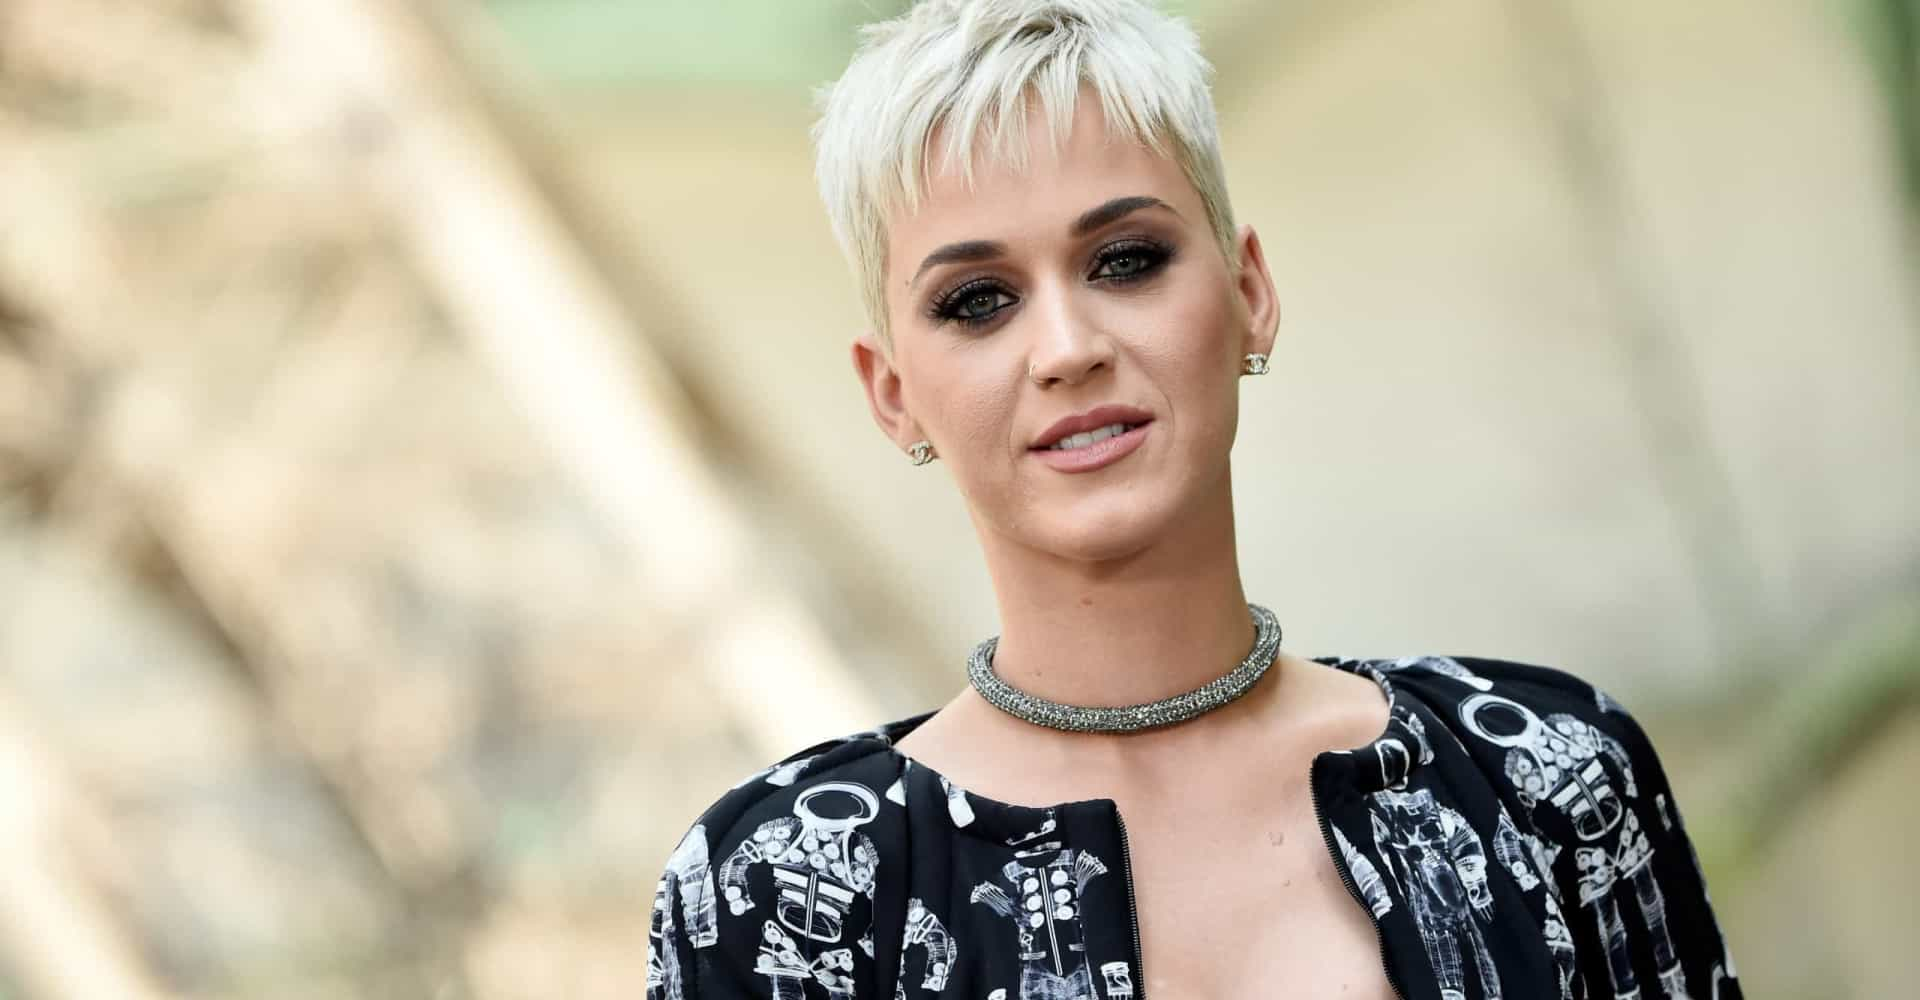 Katy Perry and other public figures accused of sexual misconduct